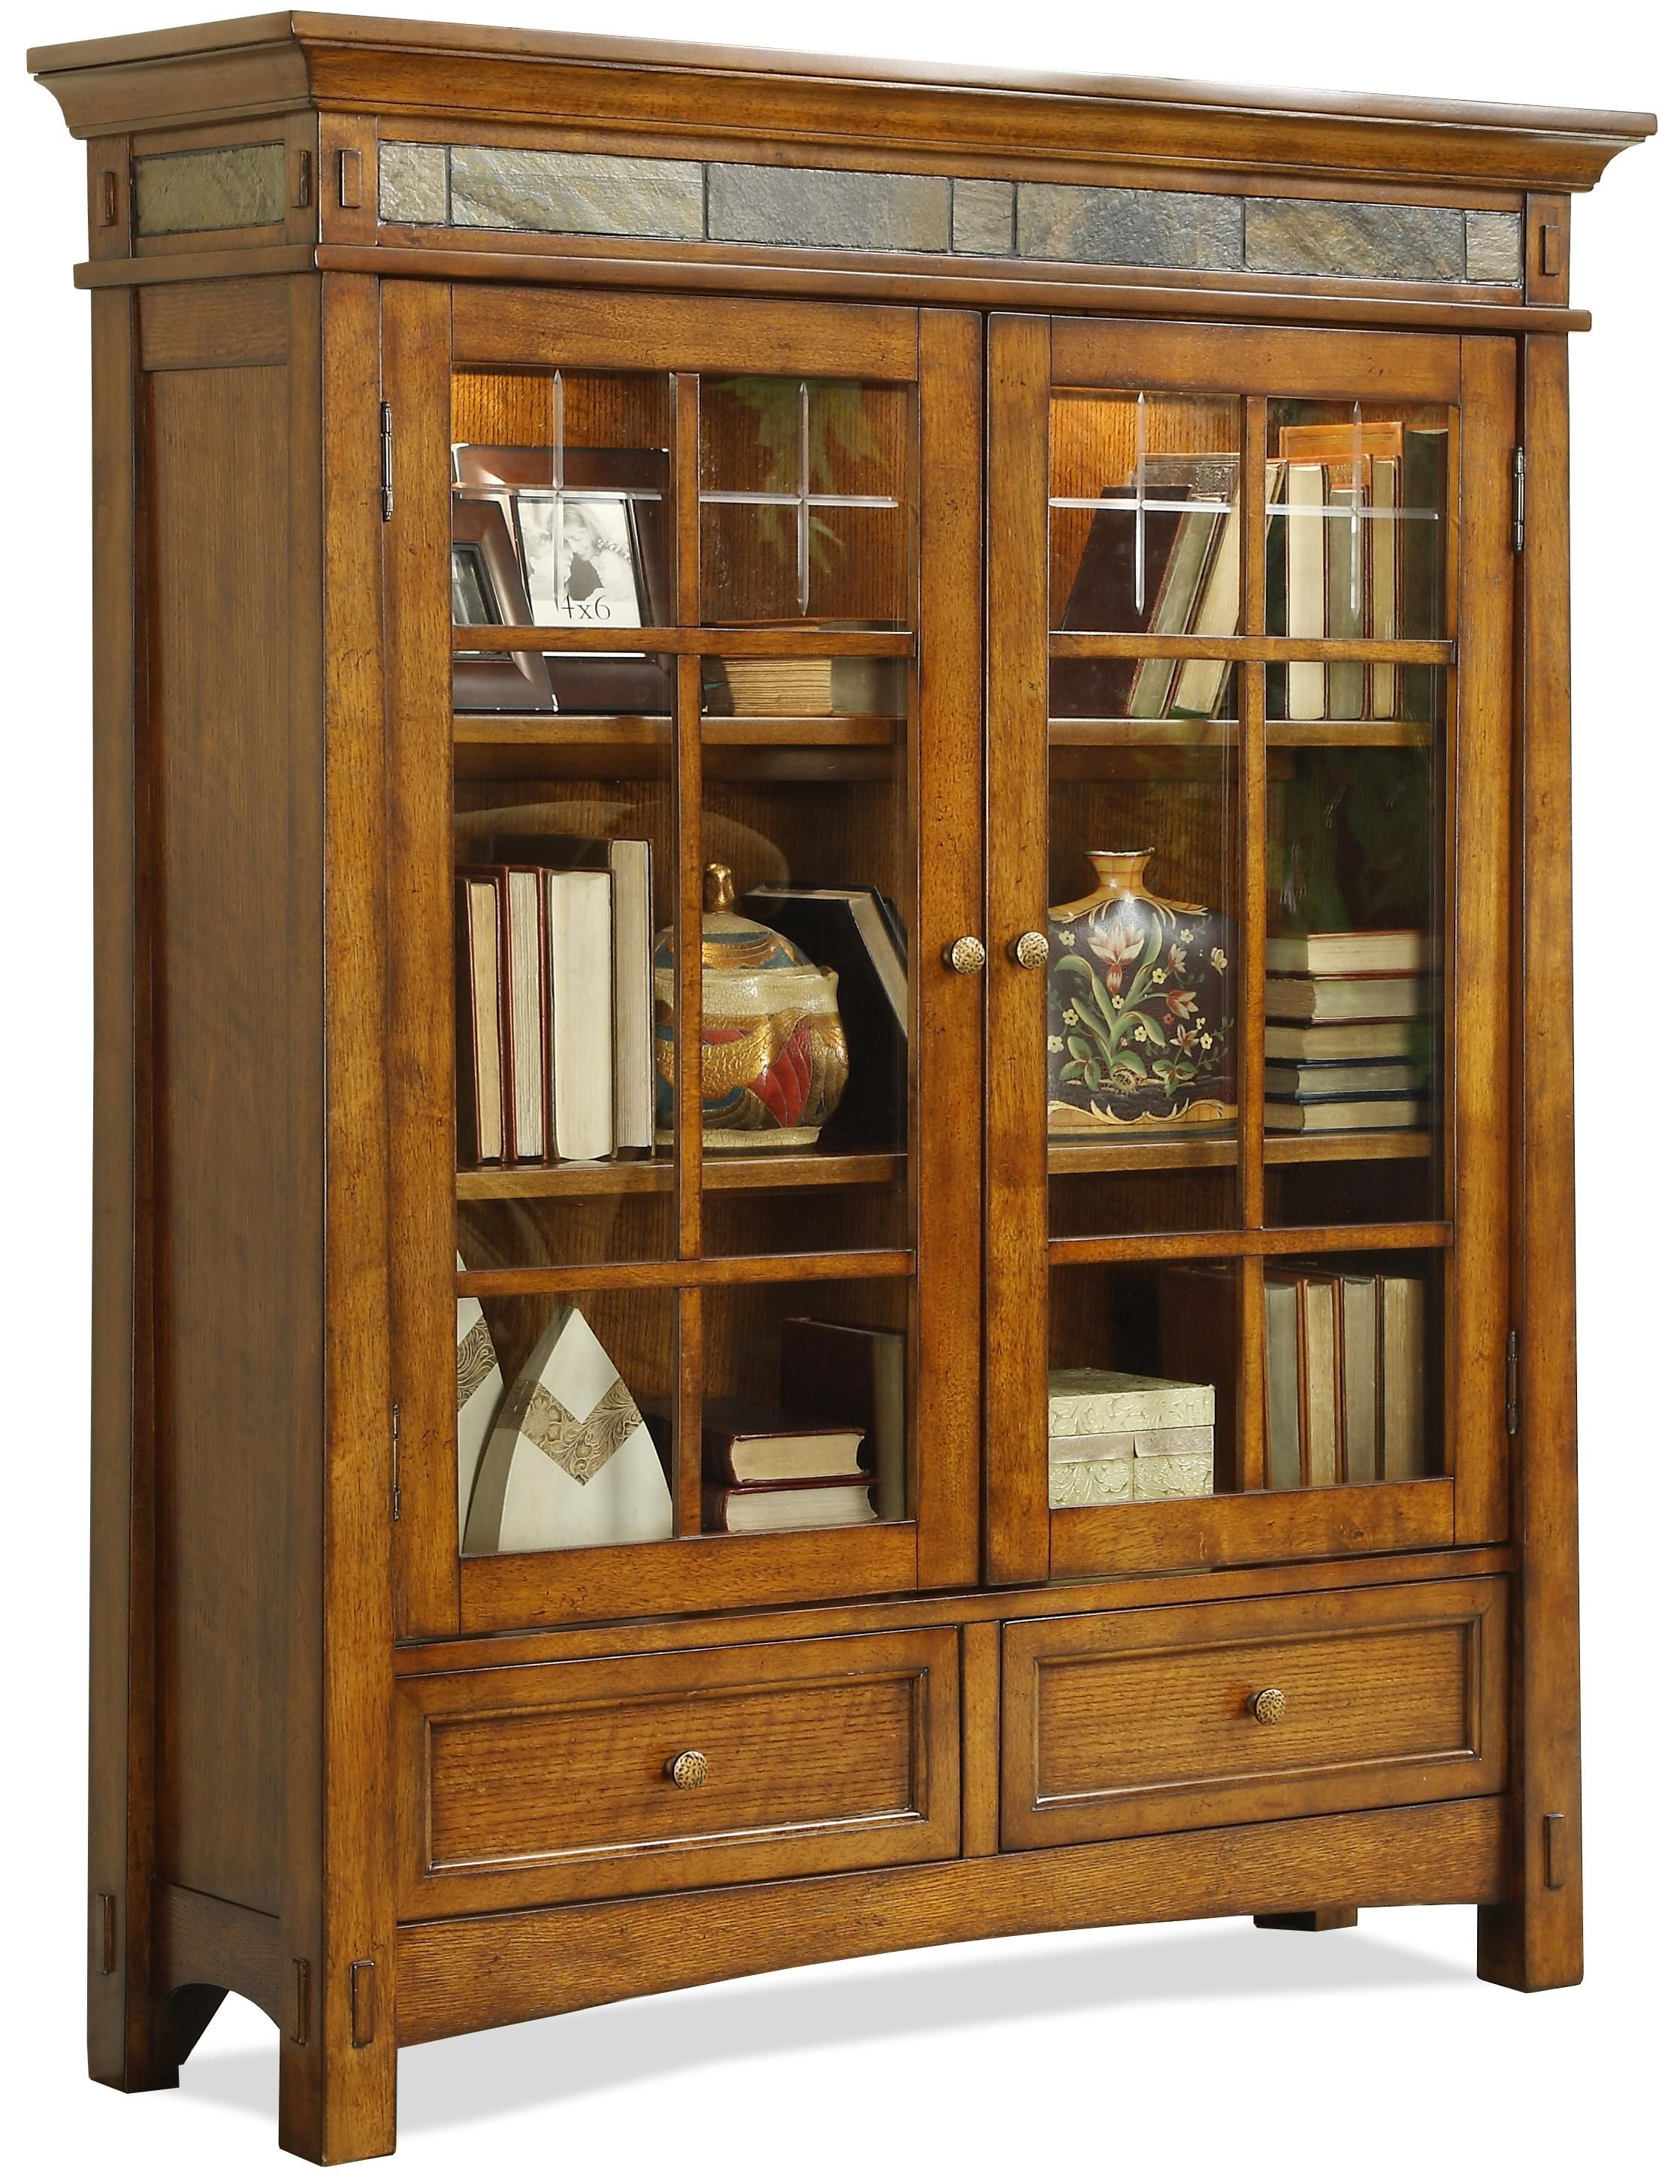 Arts and crafts style bedroom furniture - Craftsman Home Door Bookcase By Riverside Furniture